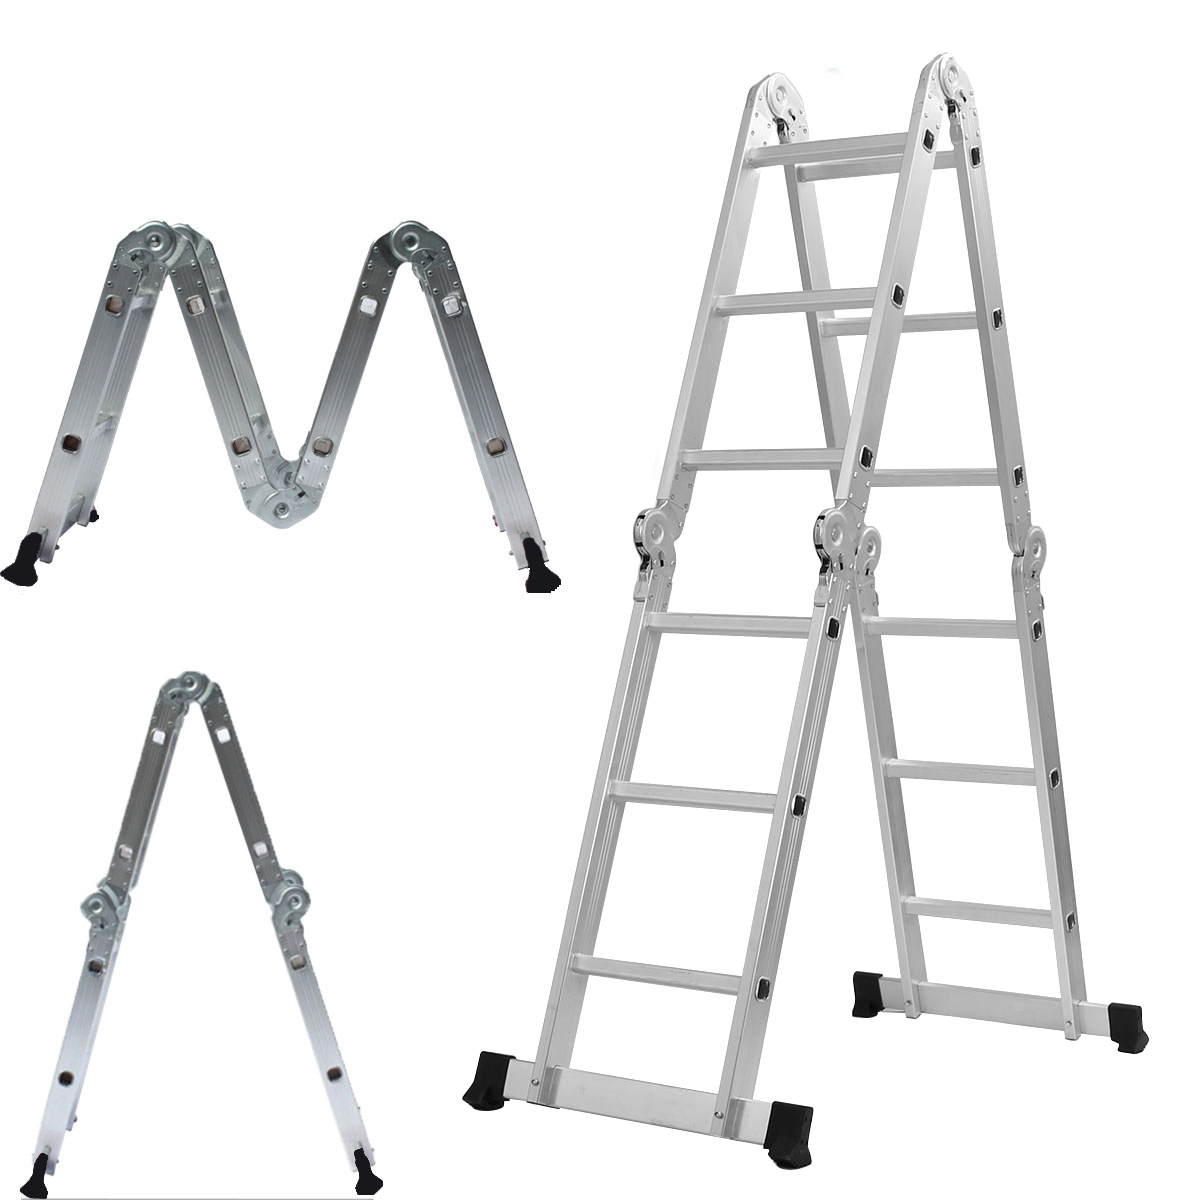 3.6M Folding Ladder Multipurpose Aluminum Alloy Ladder 4Fold X 3Steps Ladder Scaffold Extendable